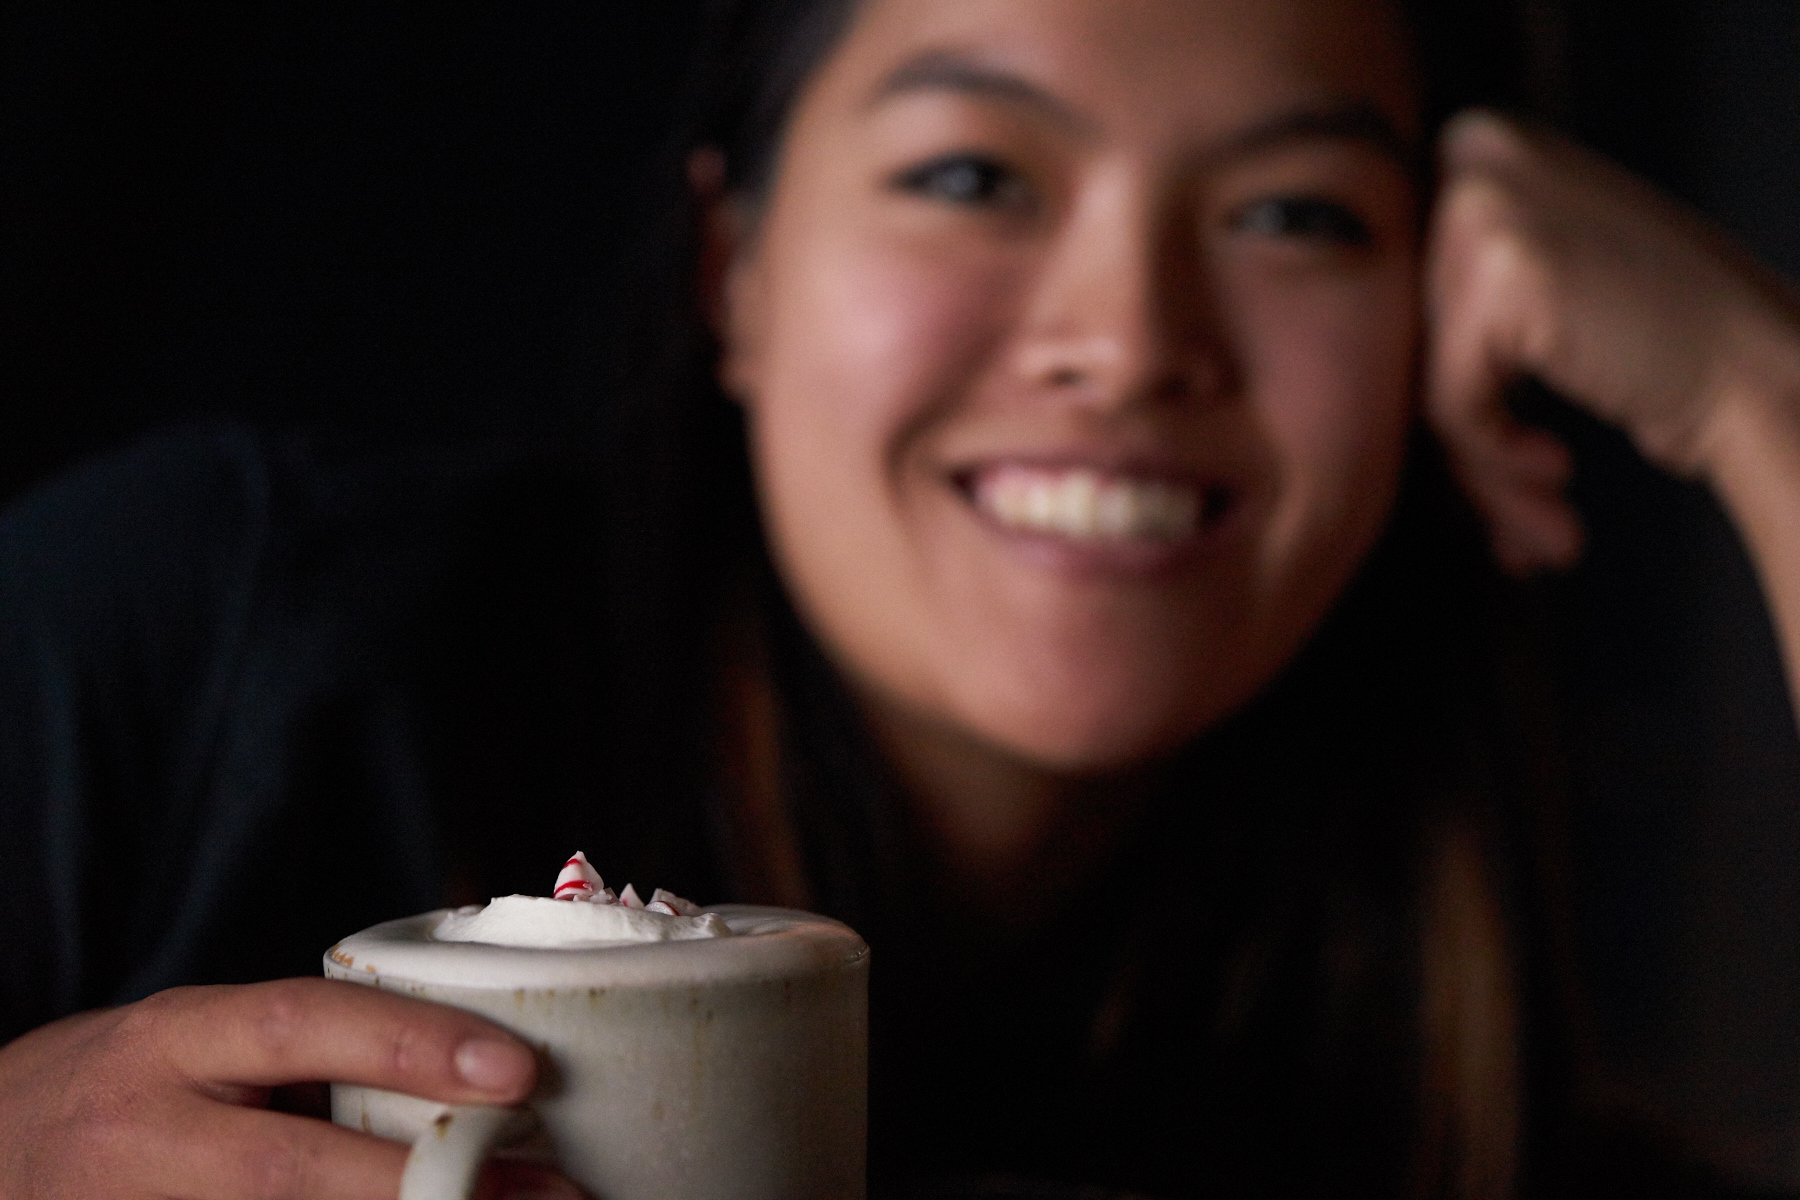 Our producer, Dana, loves peppermint hot chocolate topped with whipped cream that she hand whipped herself!